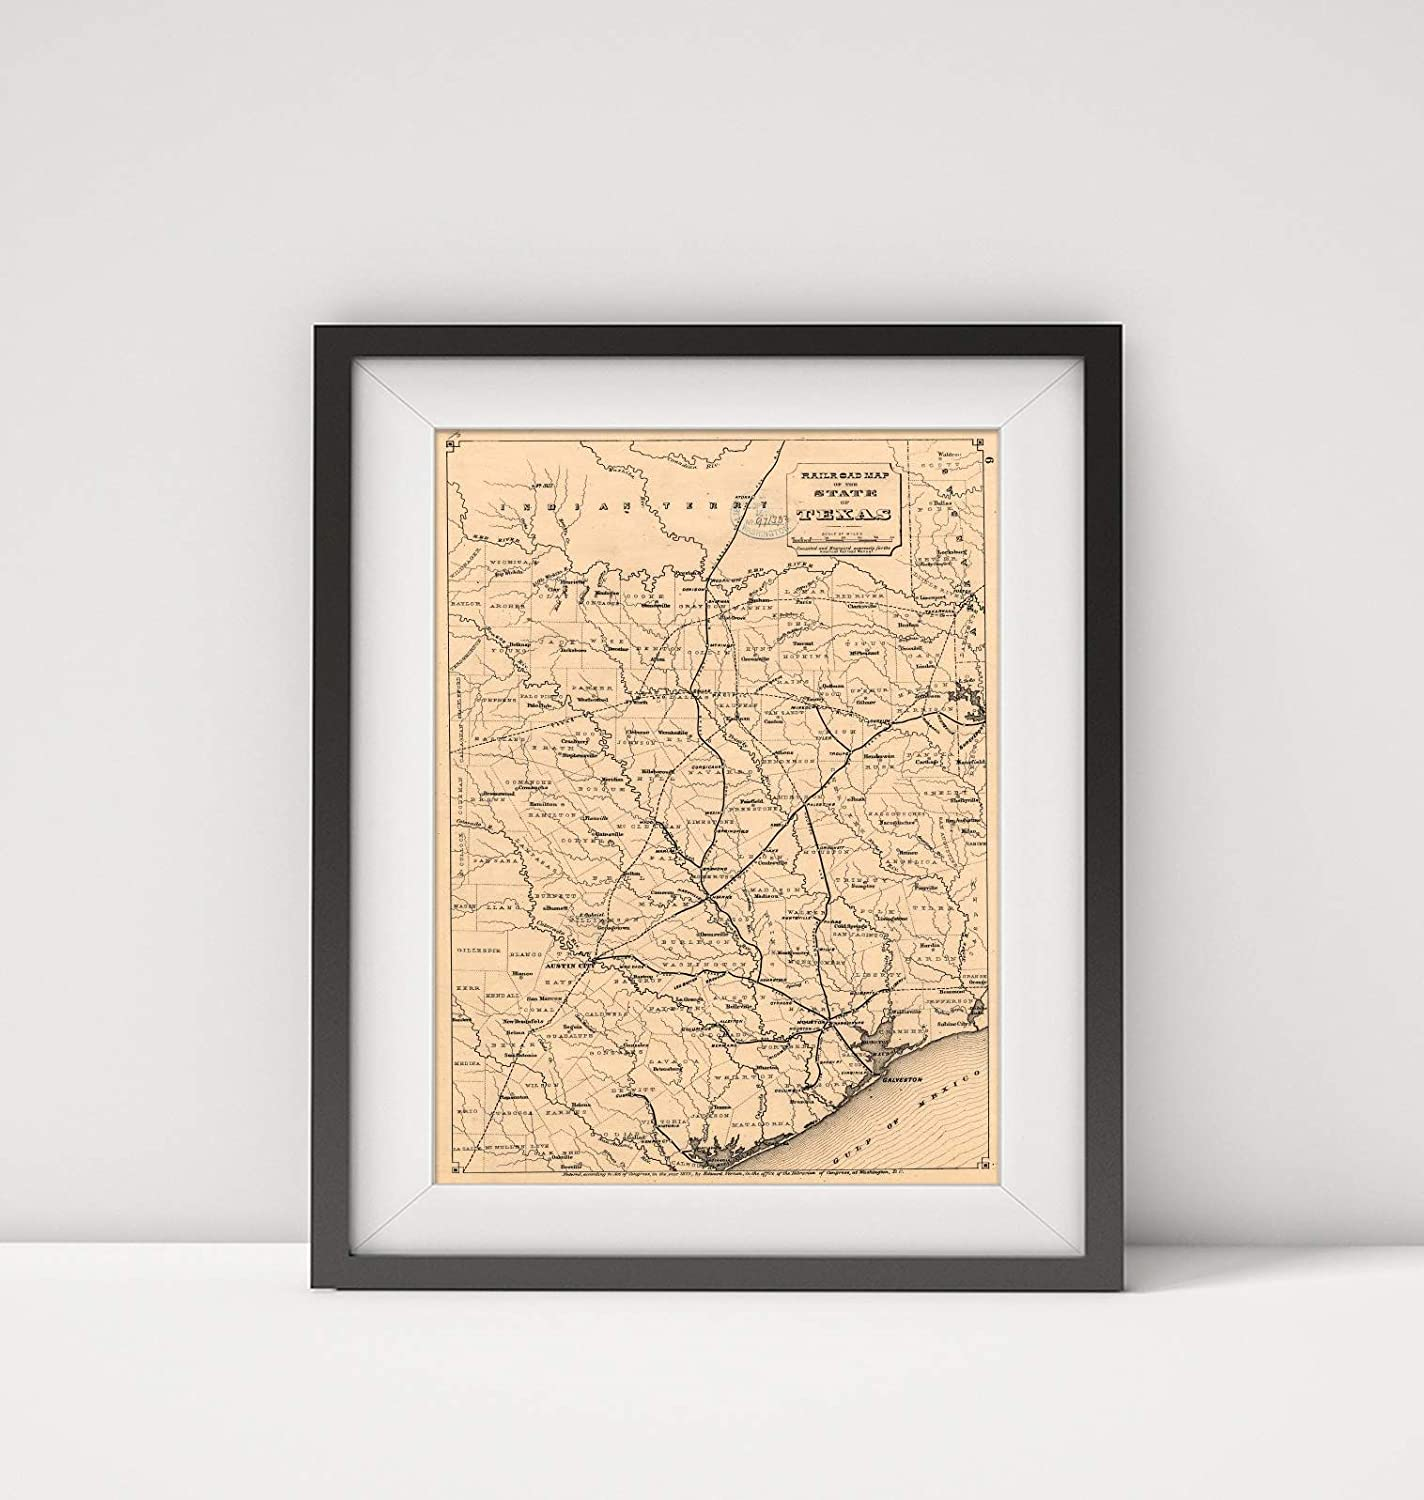 Amazon.com: 1873 Map le: Railroad map of The State of ... on texas map of monterey, texas indian map, texas map of arizona, texas map of dallas, texas county map, texas map of cordova, texas map of fremont, texas world map, texas map of paris, texas europe map, texas space, texas us map,